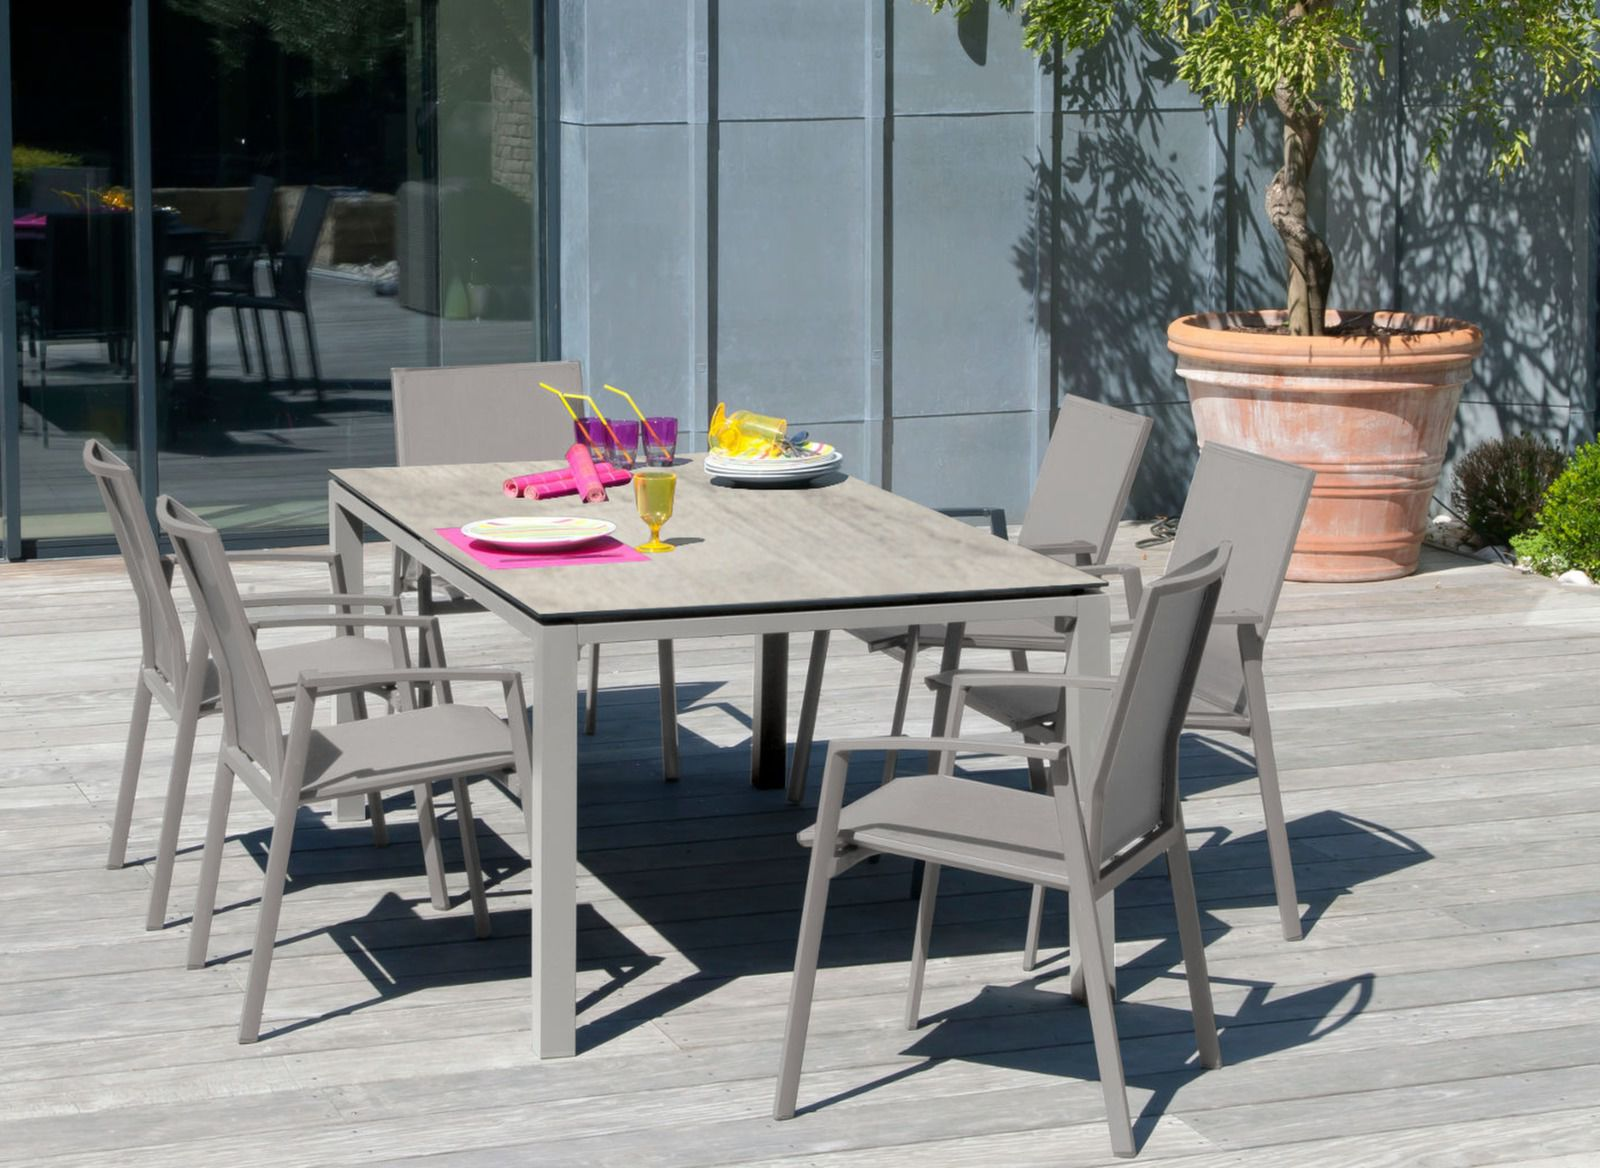 table de jardin ston o 6 si ges palma promotions proloisirs. Black Bedroom Furniture Sets. Home Design Ideas